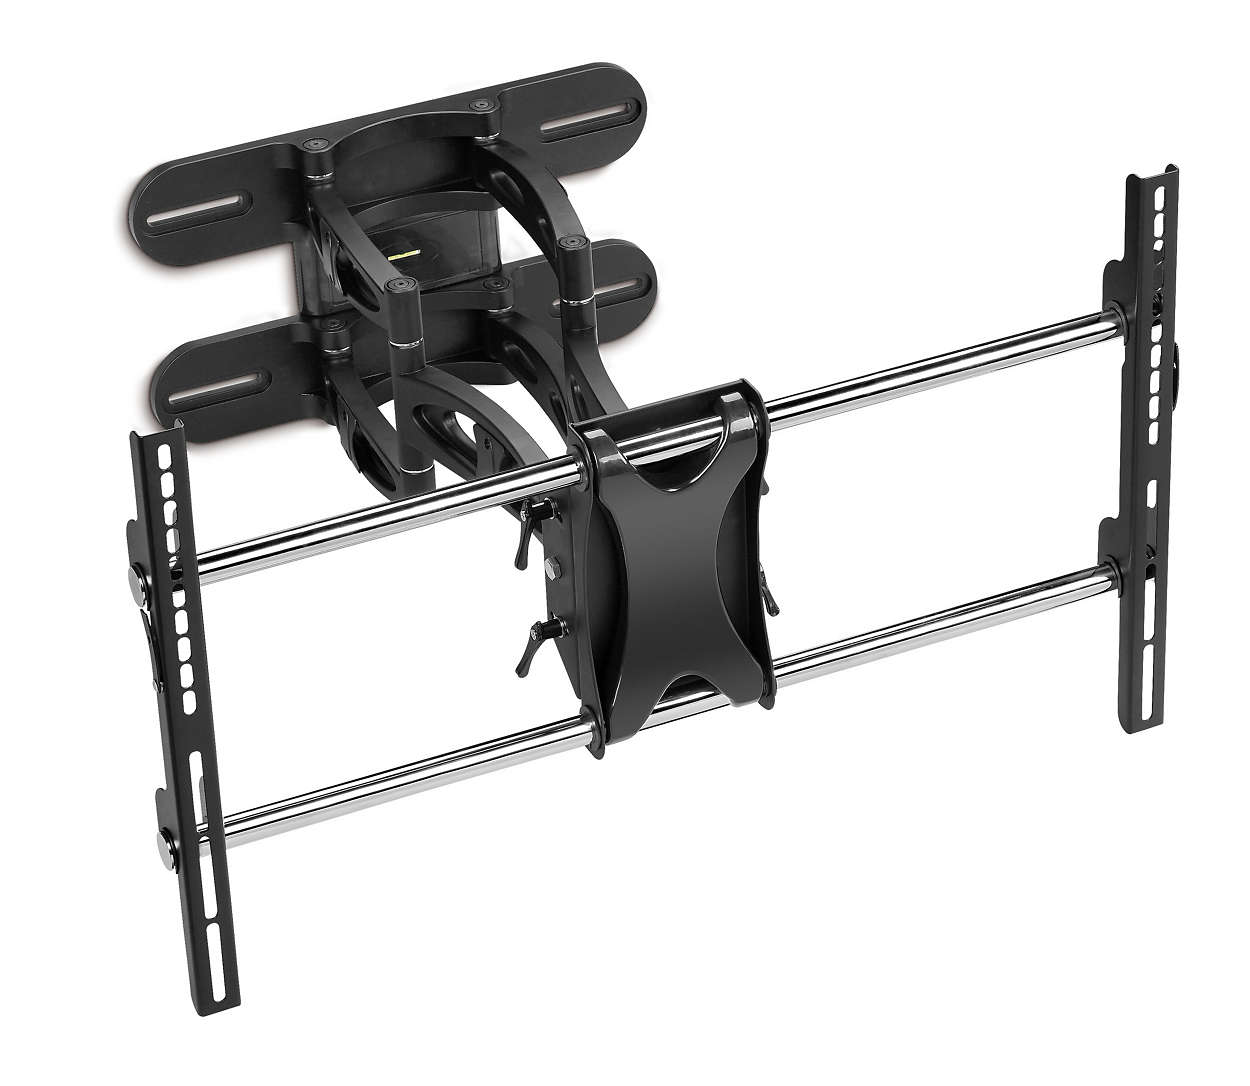 Full motion wall mount